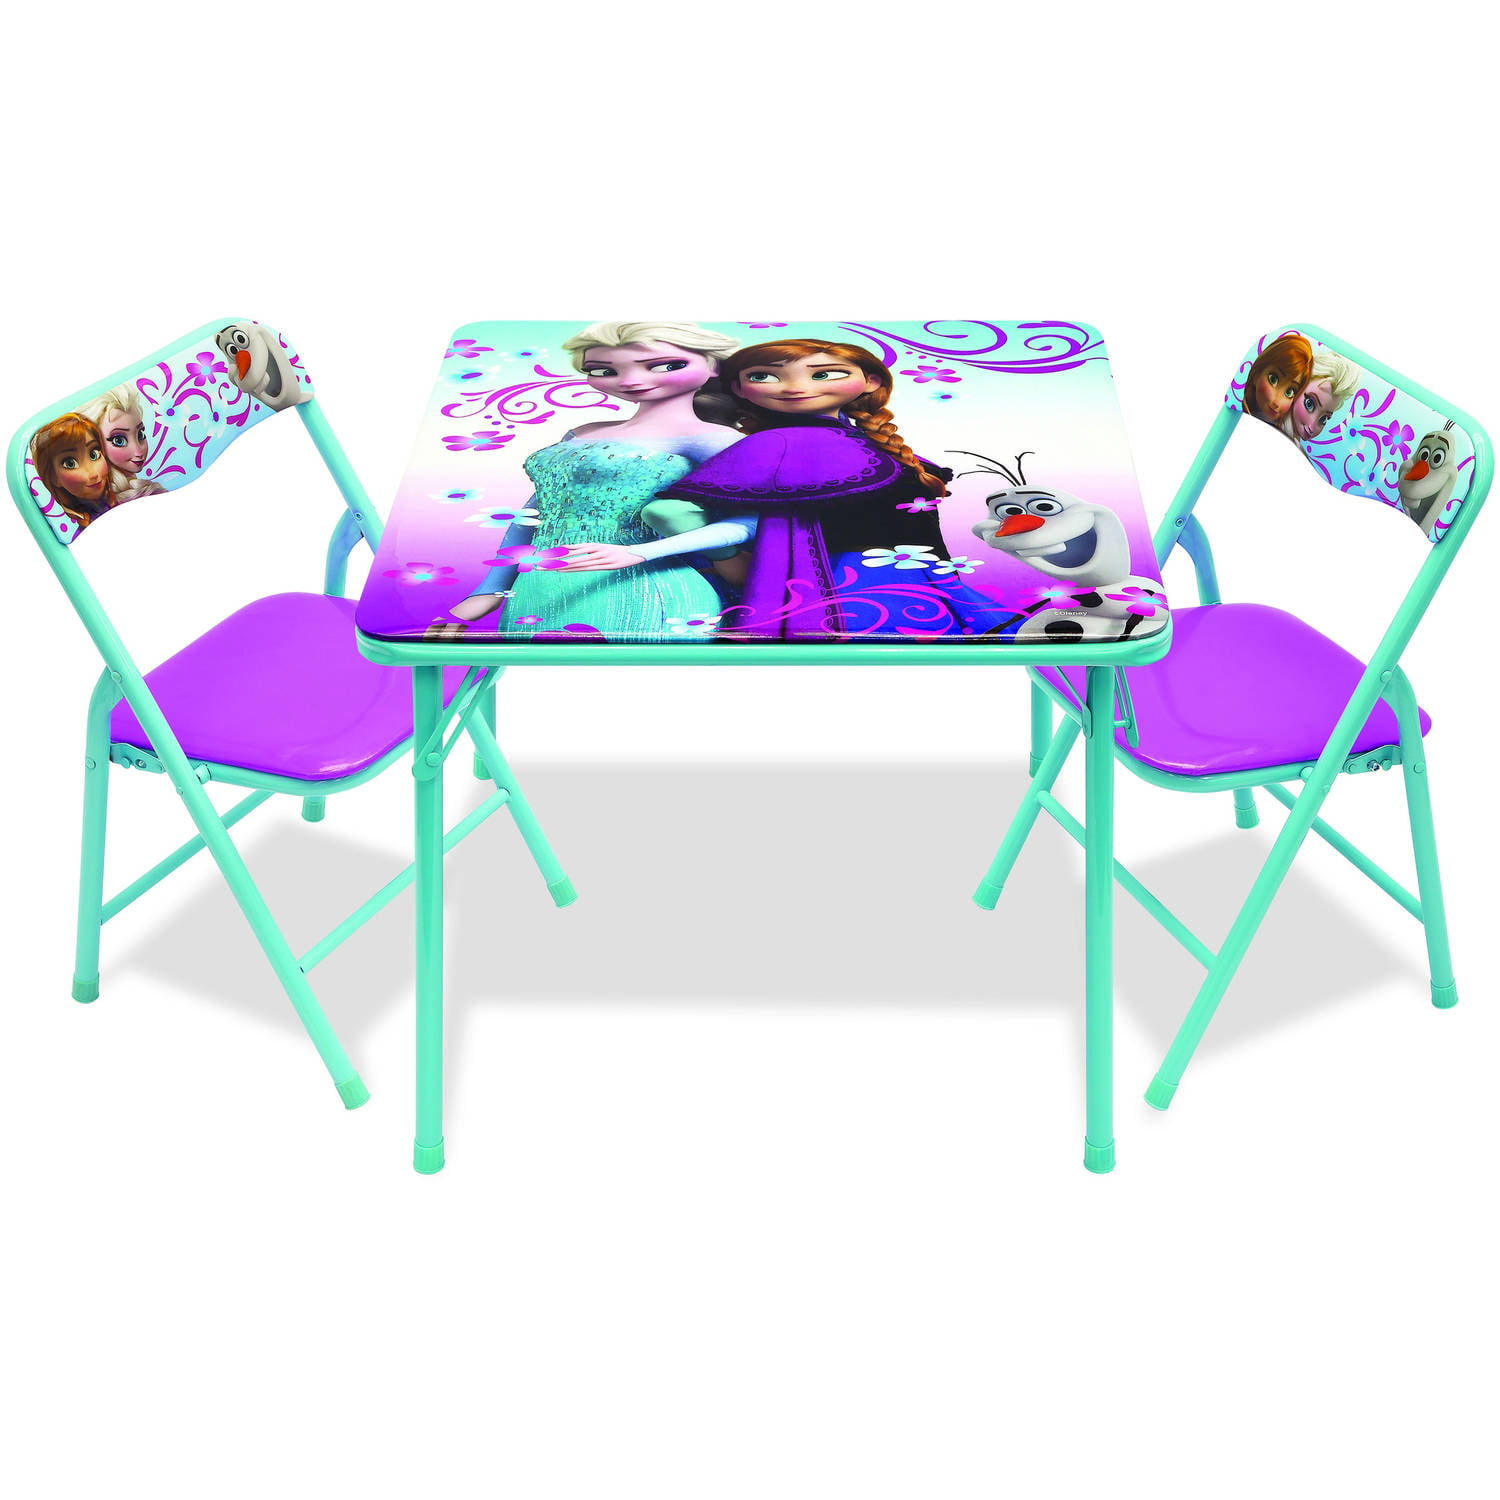 sc 1 st  Walmart & Disney Frozen Activity Table Set - Walmart.com